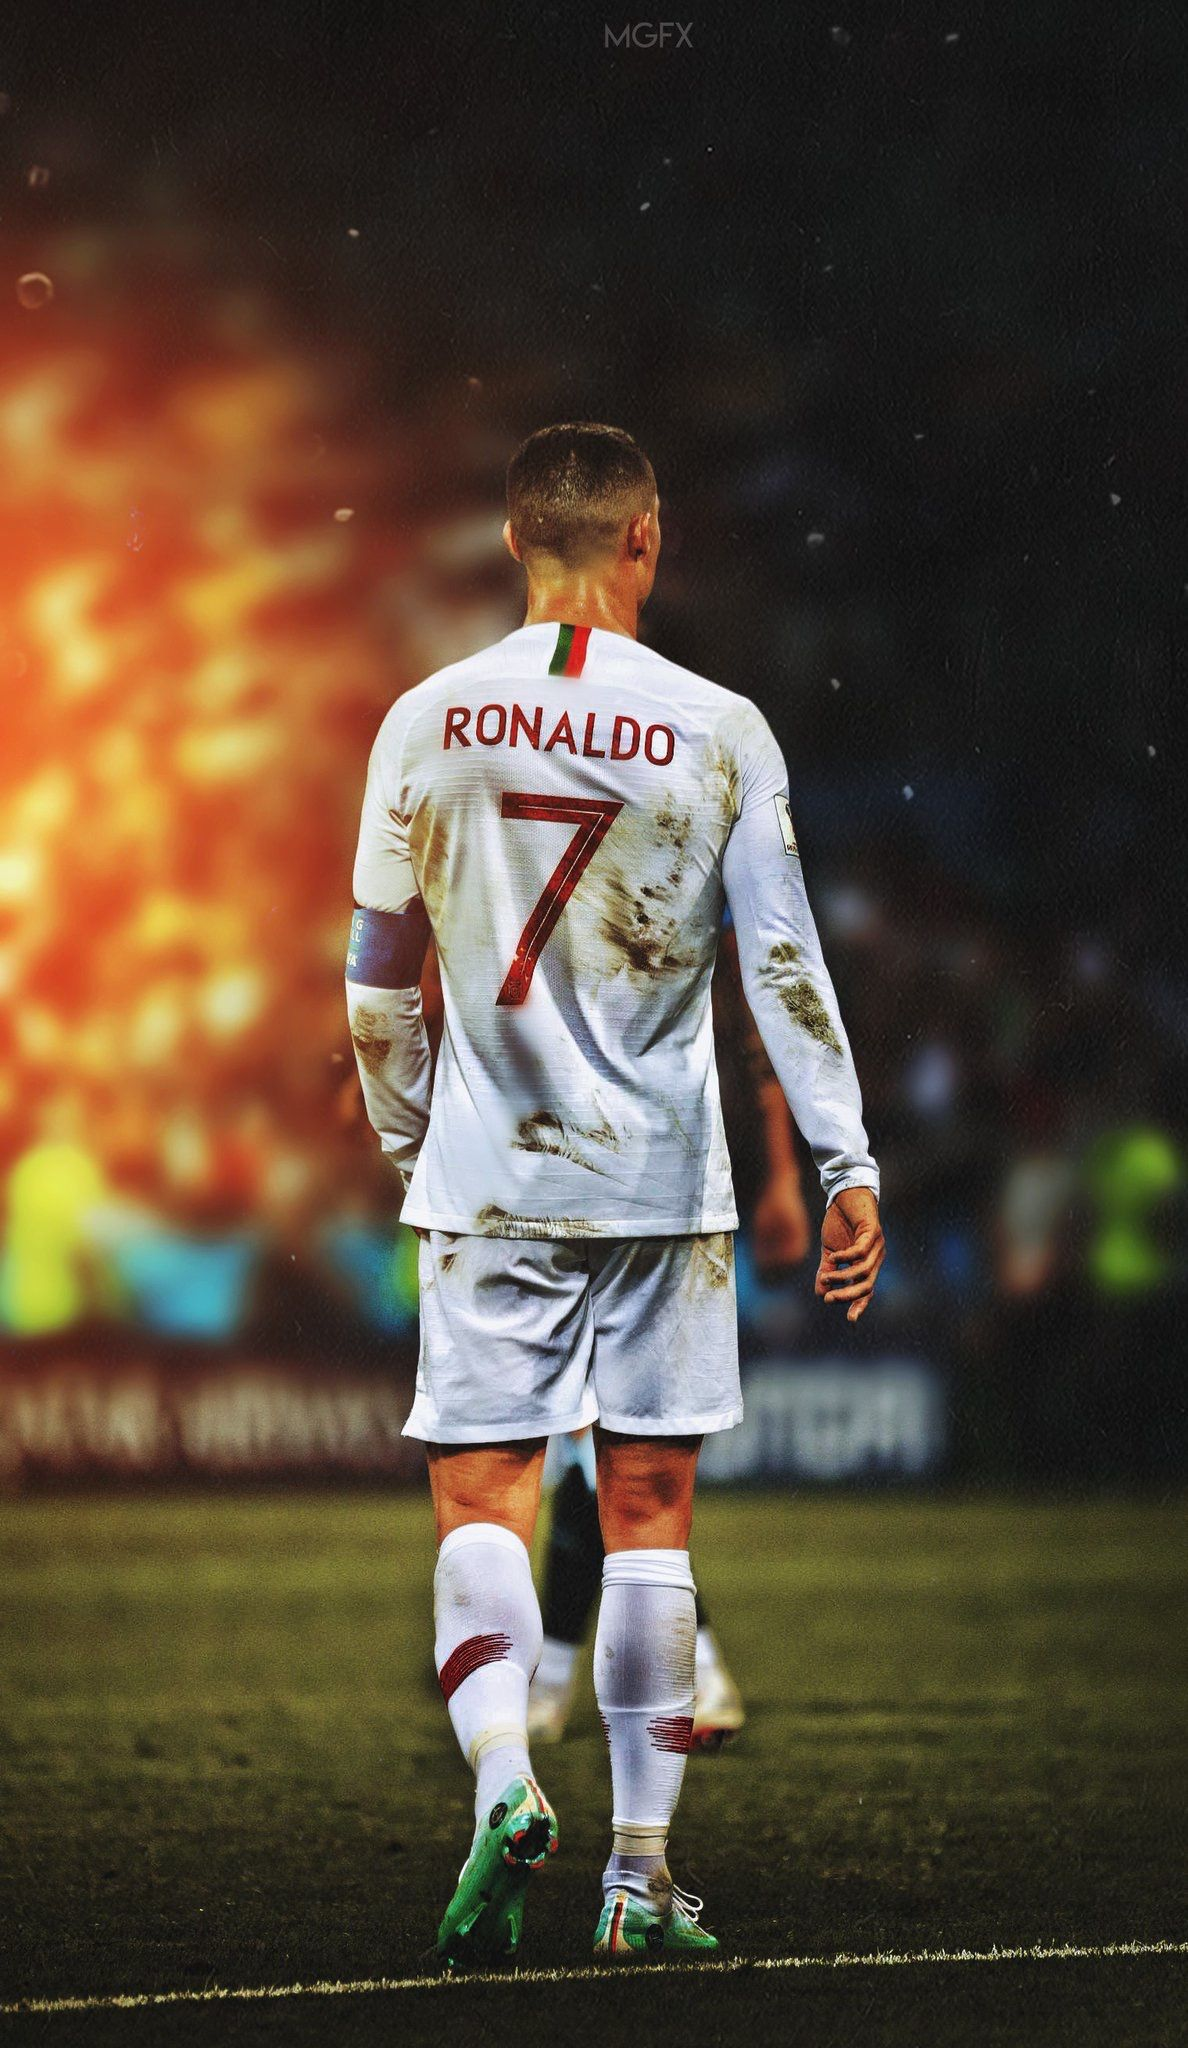 Pin By Annalisa Hackett On Real Madrid And Cr7 Ronaldo Ronaldo